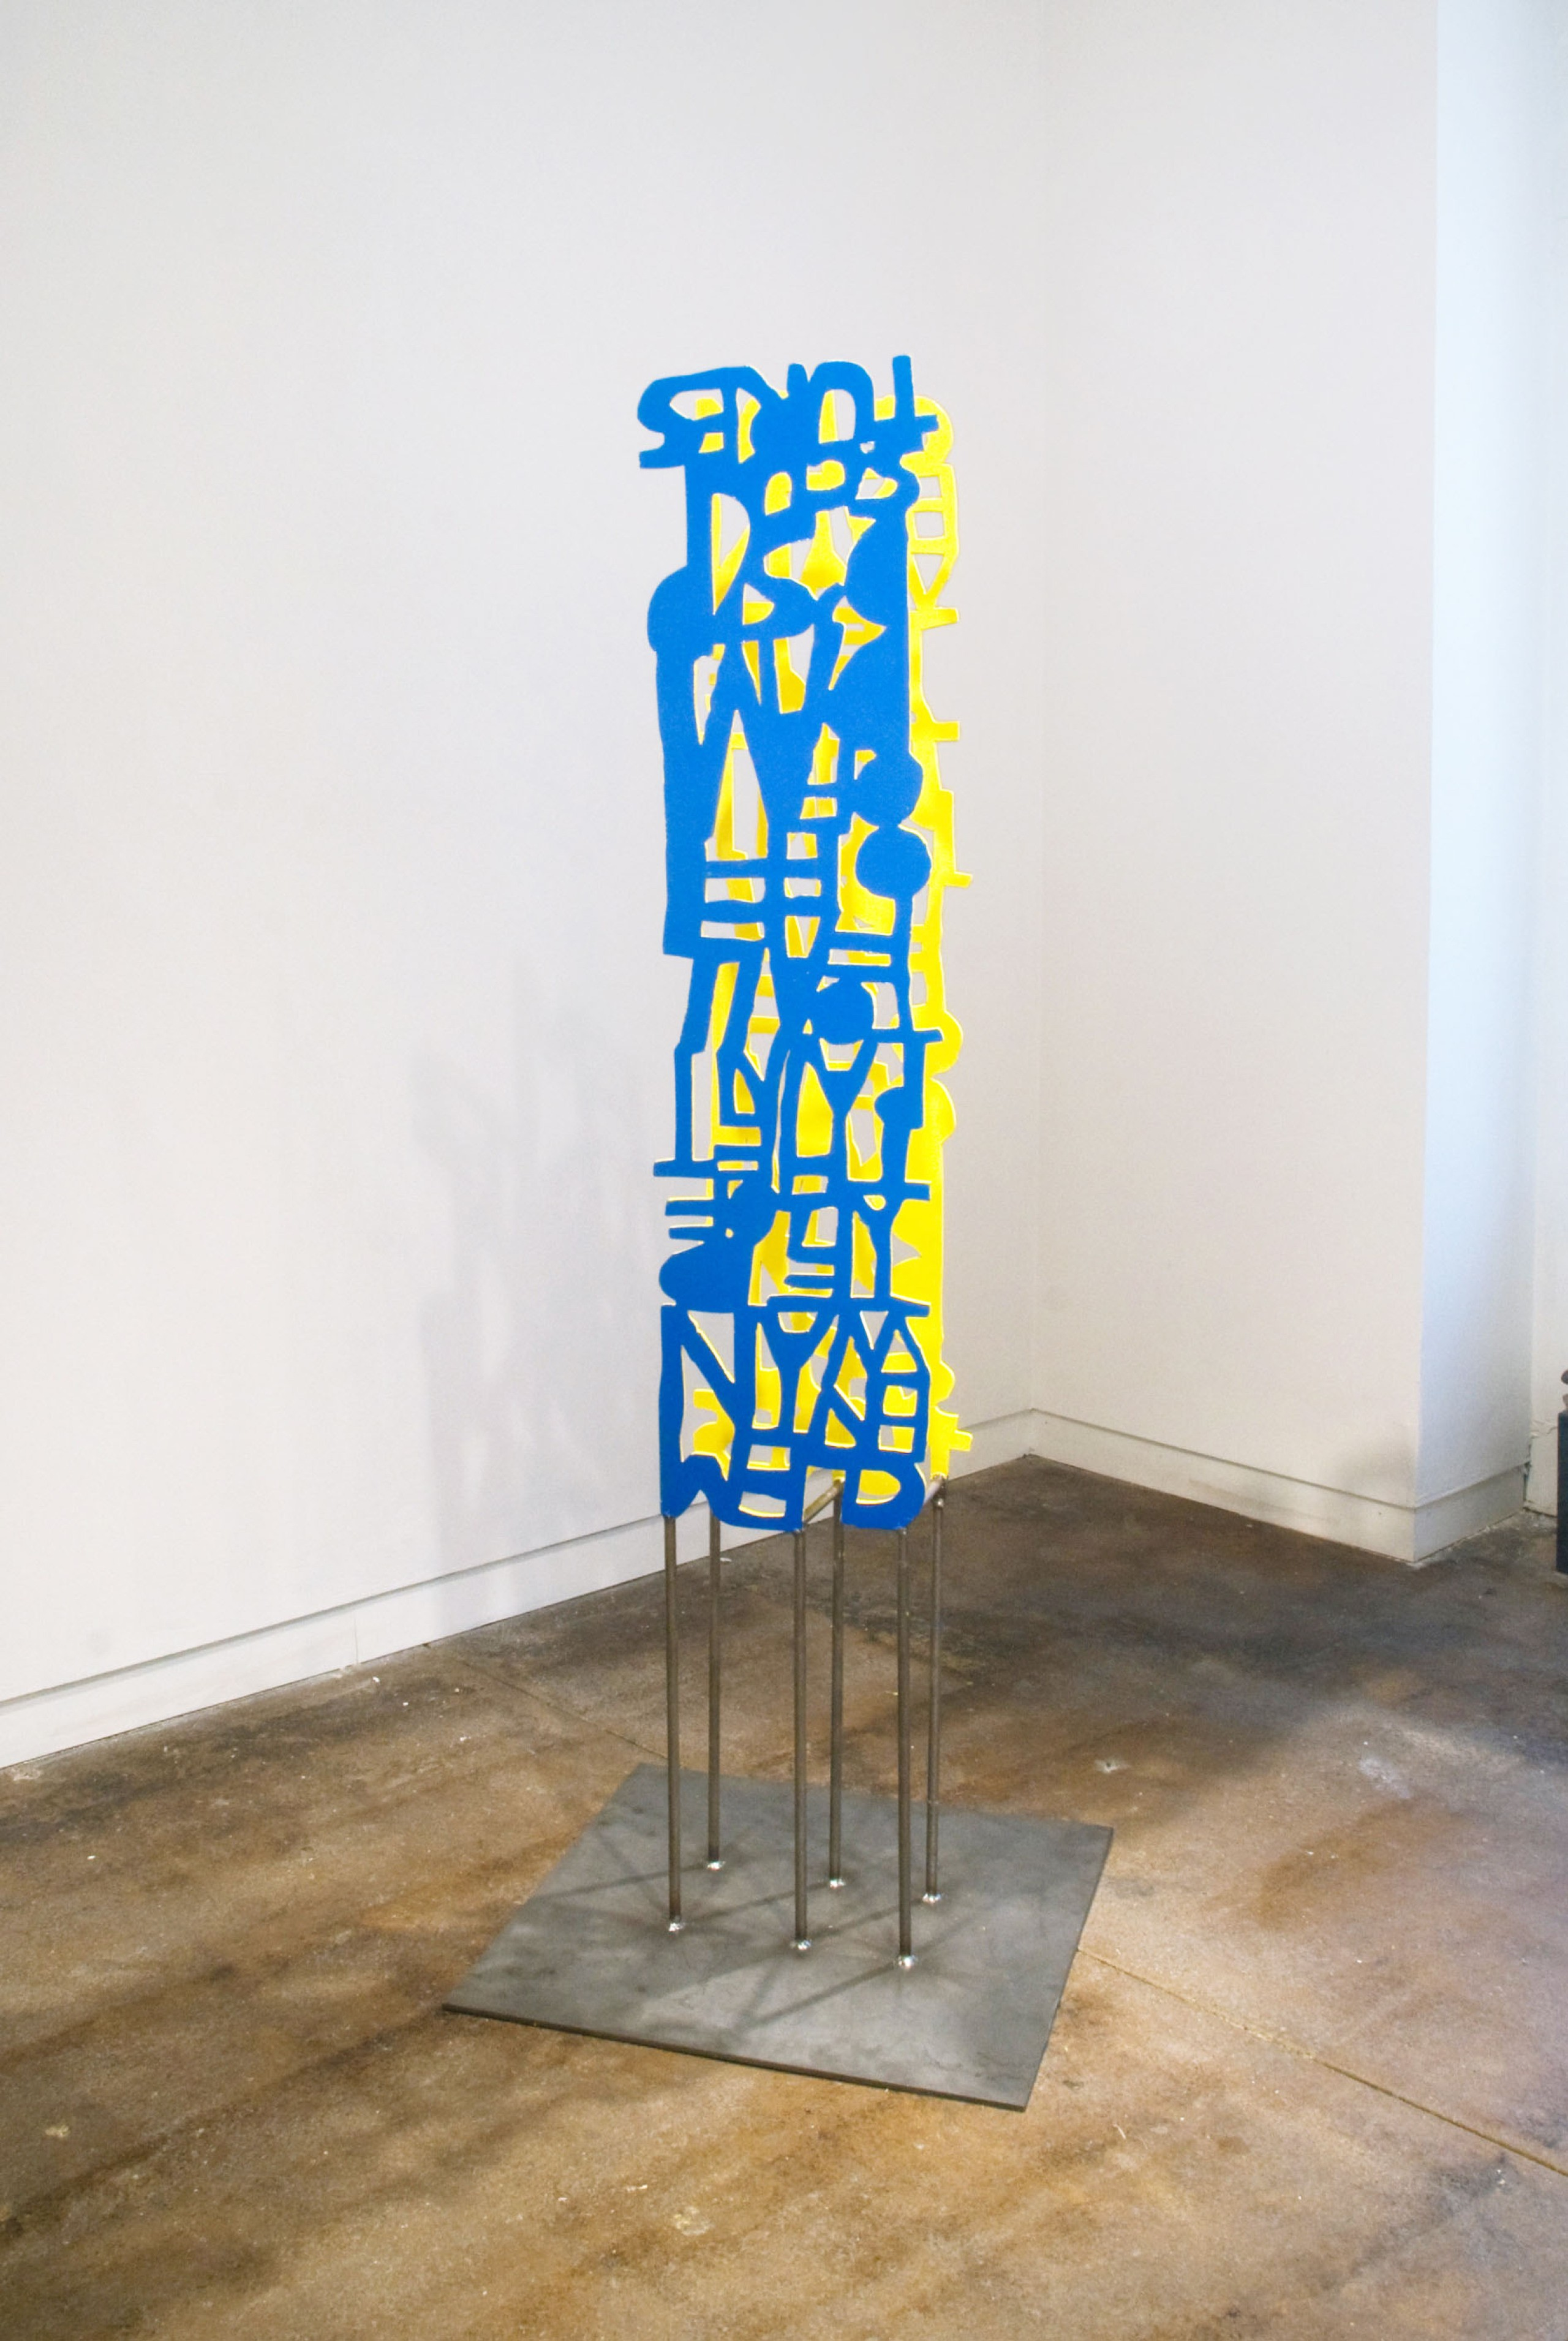 Anthony Campuzano, Unpainted Painted Sculpture